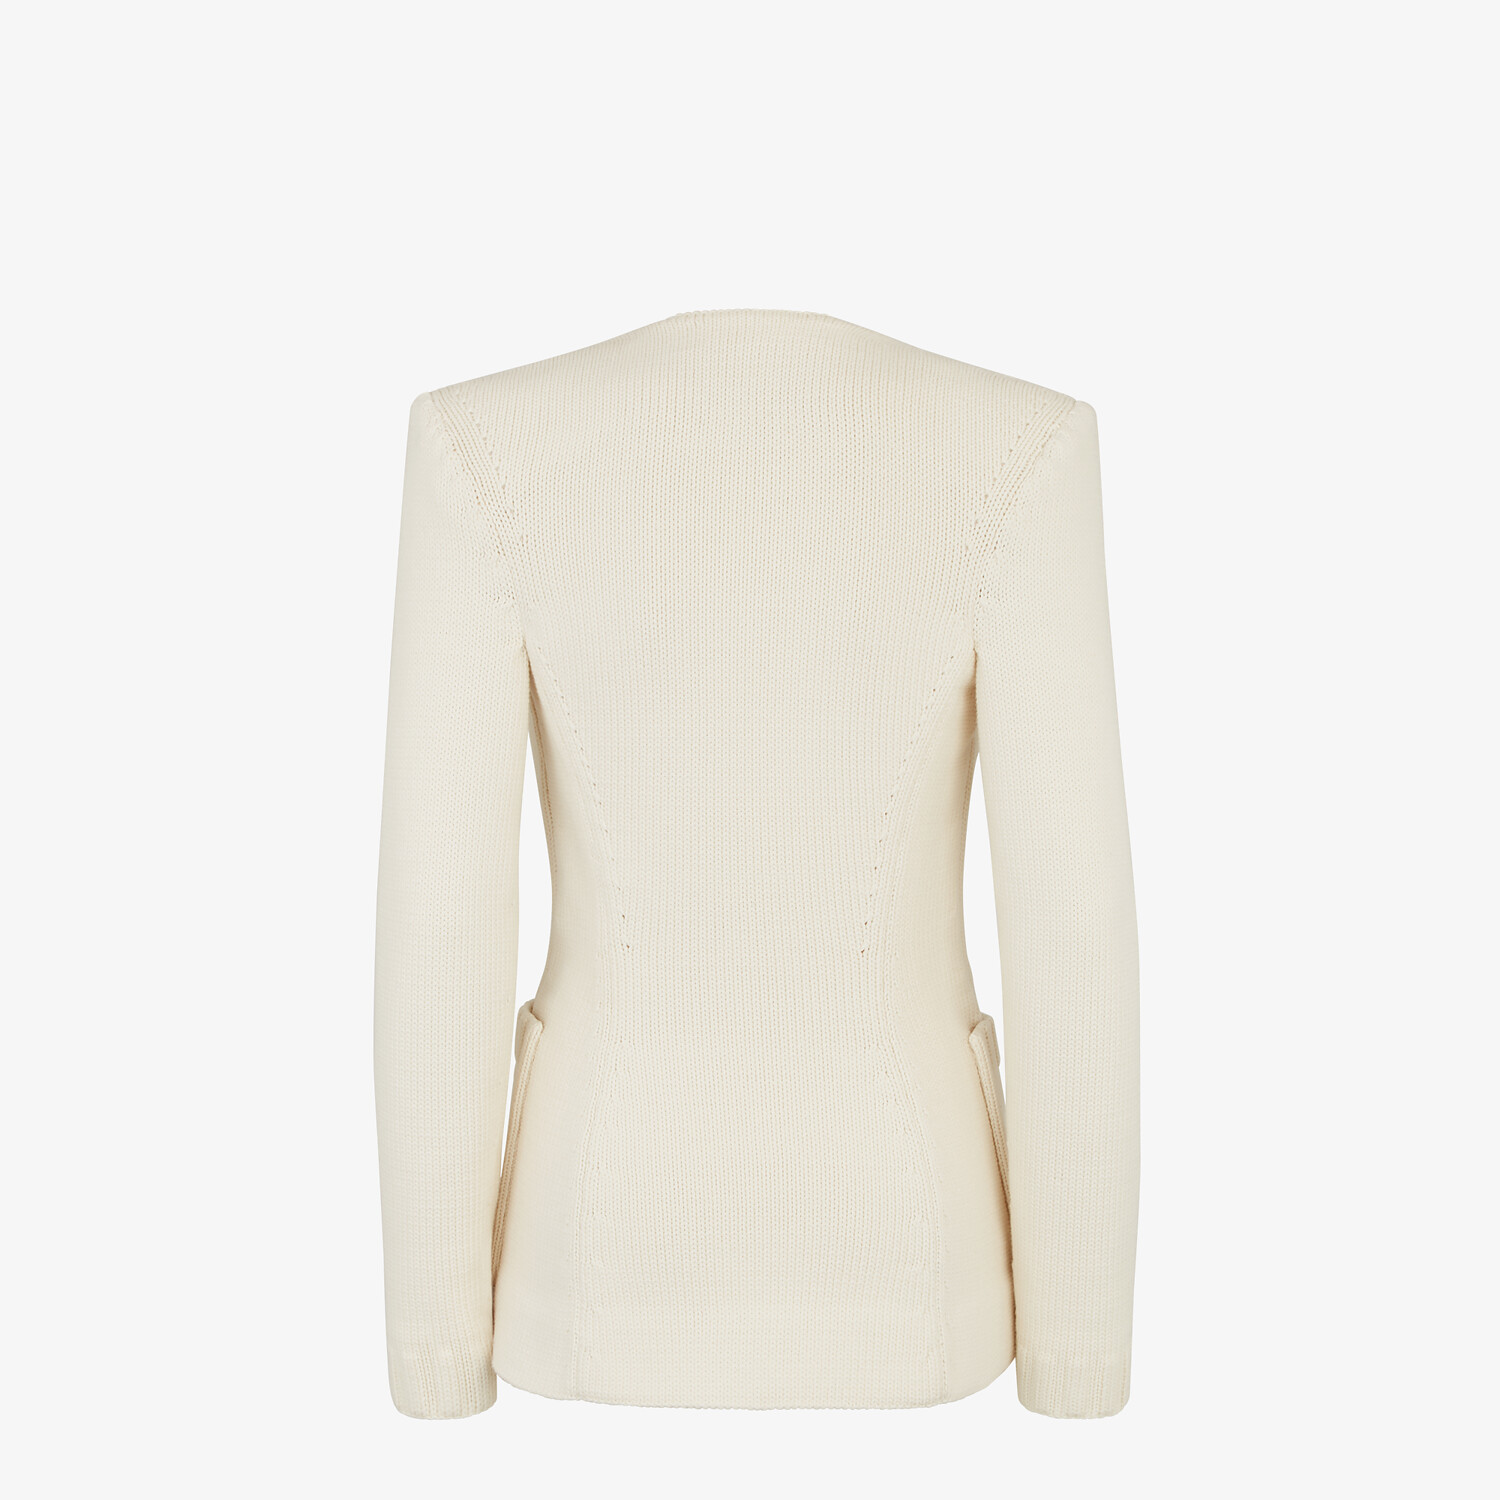 FENDI JACKET - White cotton jacket - view 2 detail